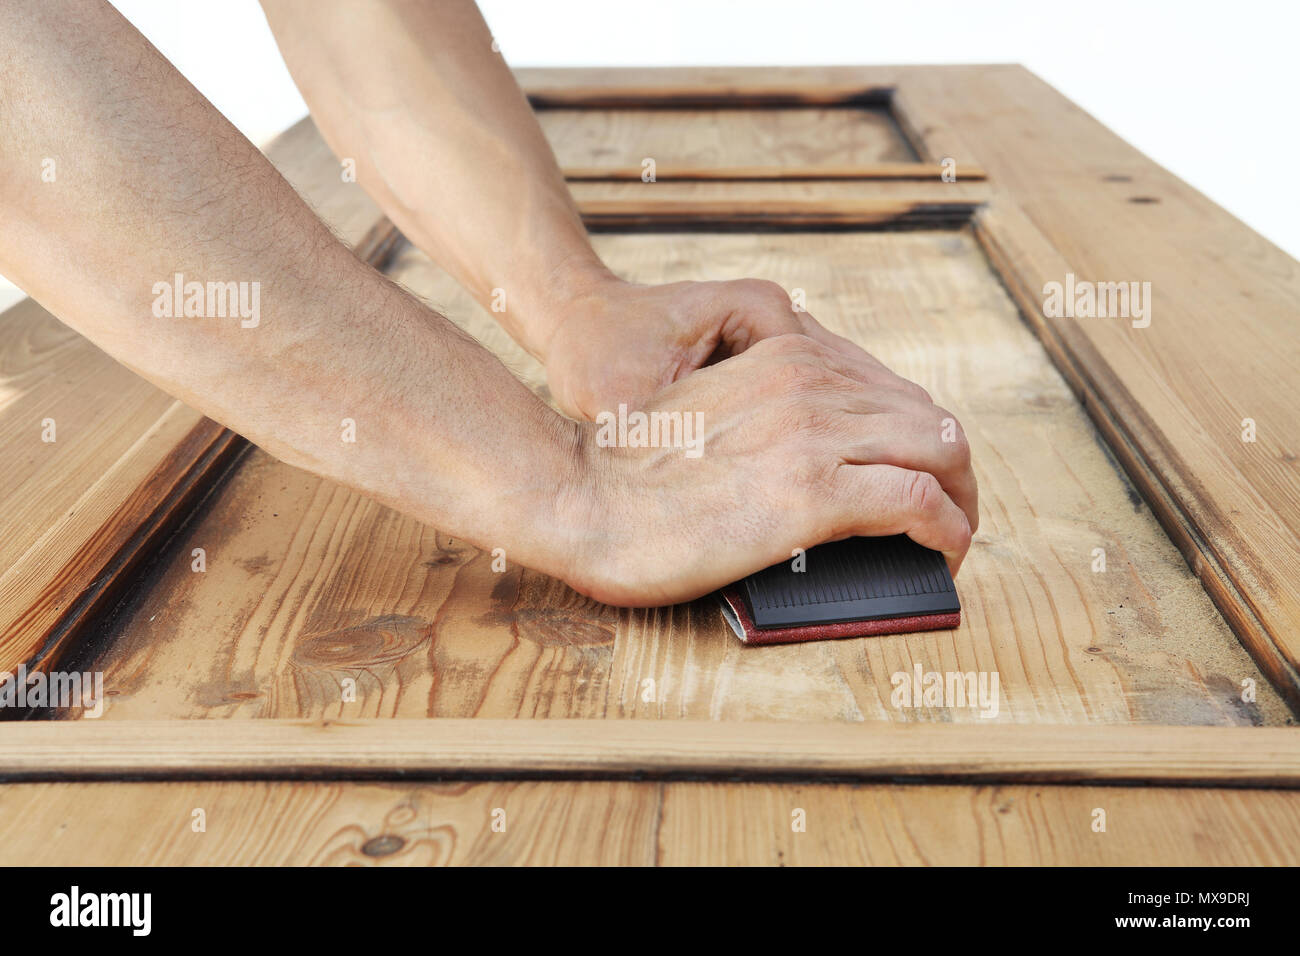 carpenter hands work the wood with the sandpaper - Stock Image